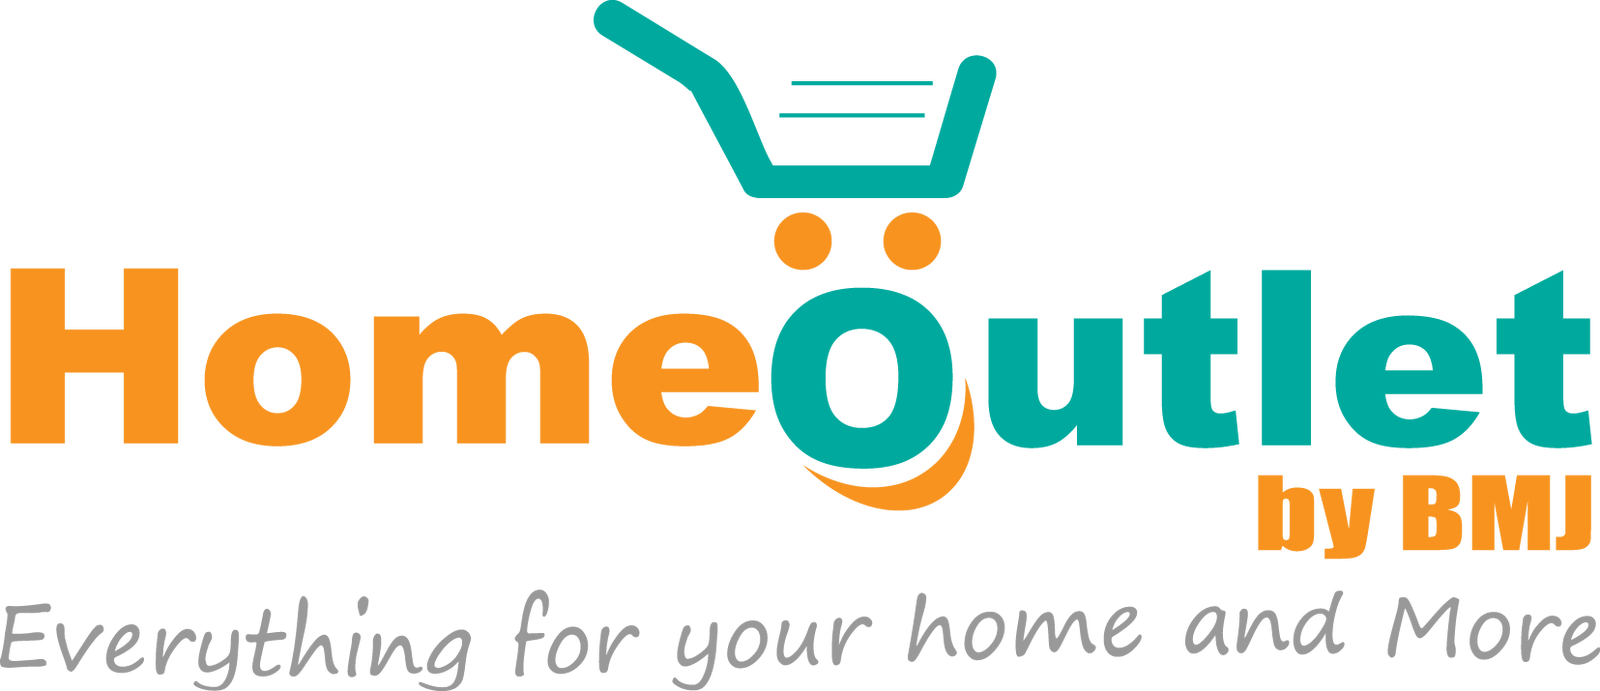 Home Outlet by BMJ